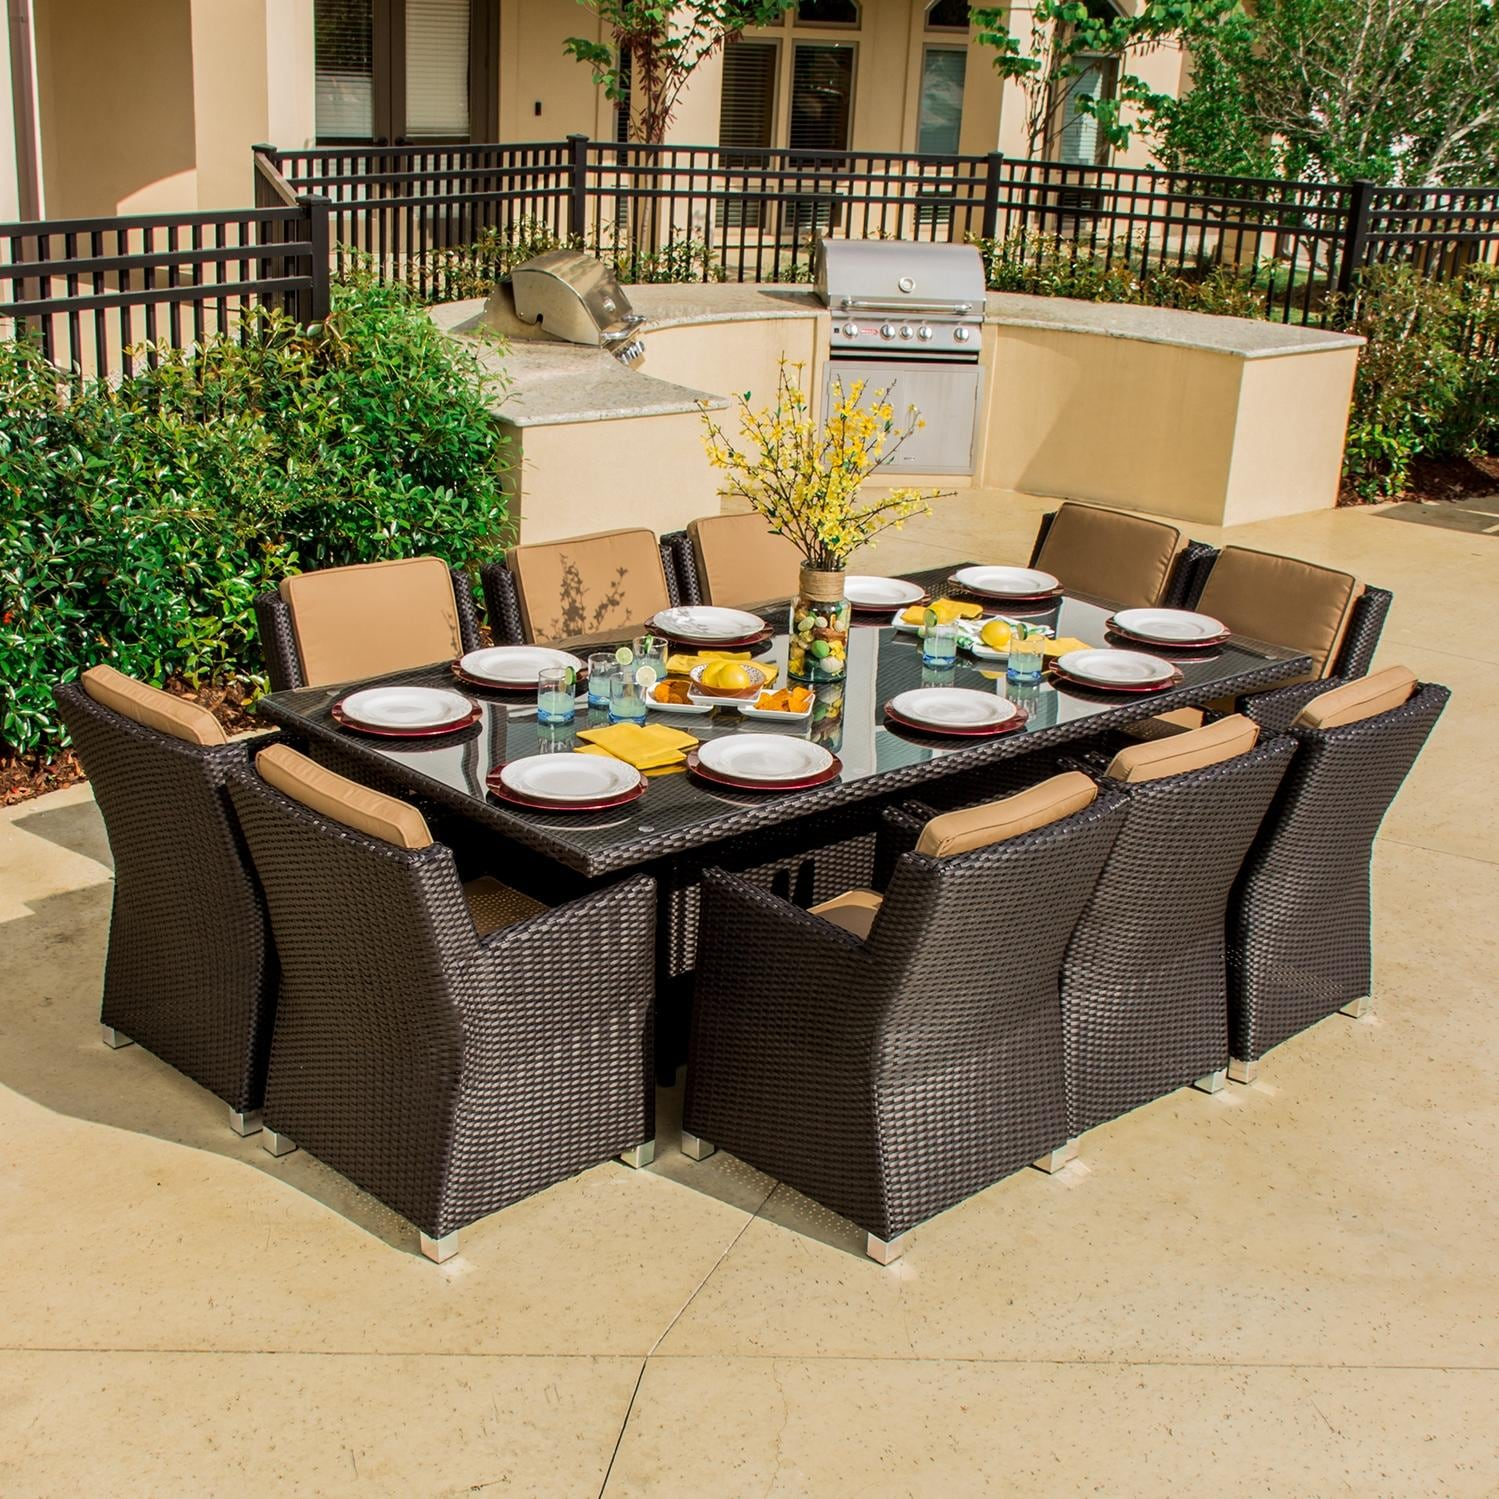 Avery island 10 person resin wicker patio dining set by for Outdoor dining sets for 10